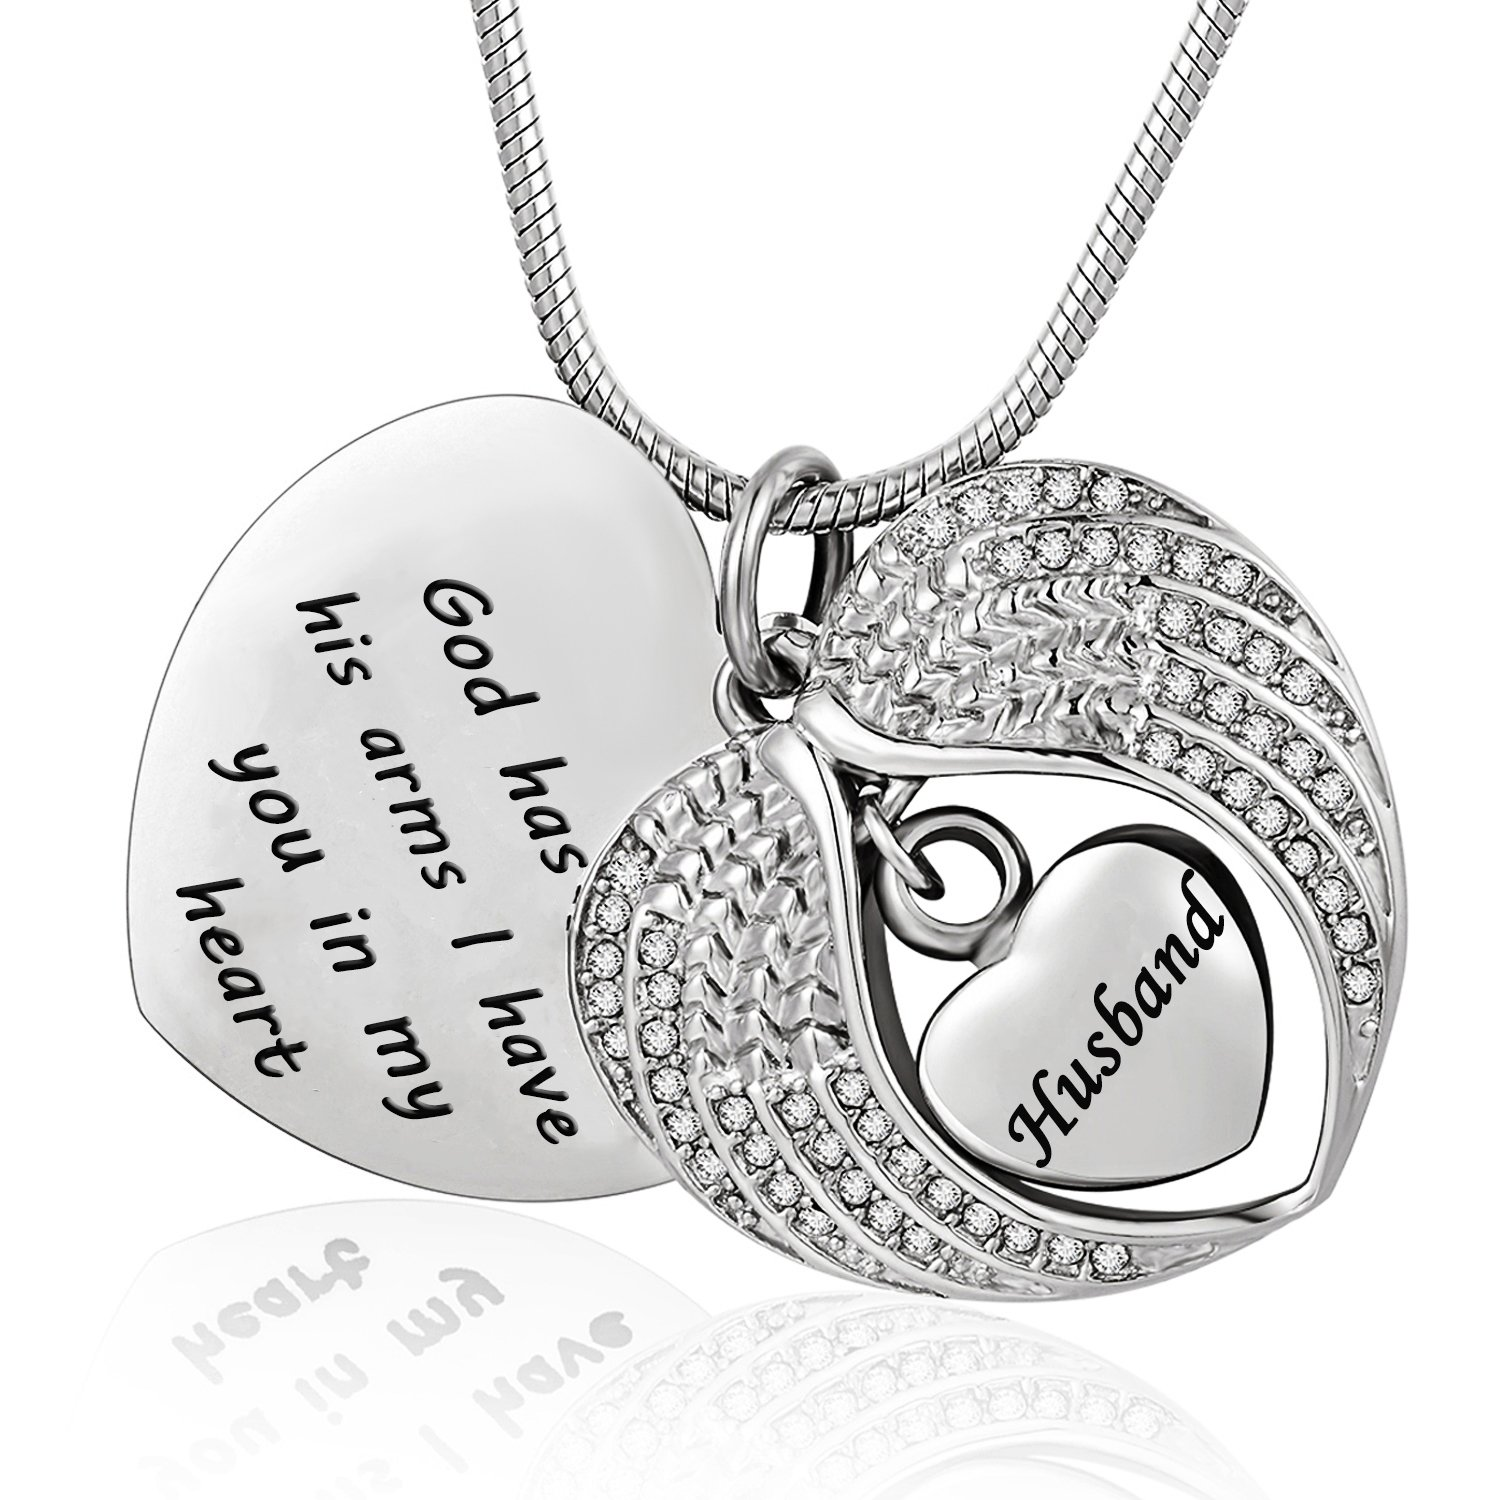 Norya God has You in his arms with Angel Wing Diamond Cremation Jewelry Keepsake Memorial Urn Necklace